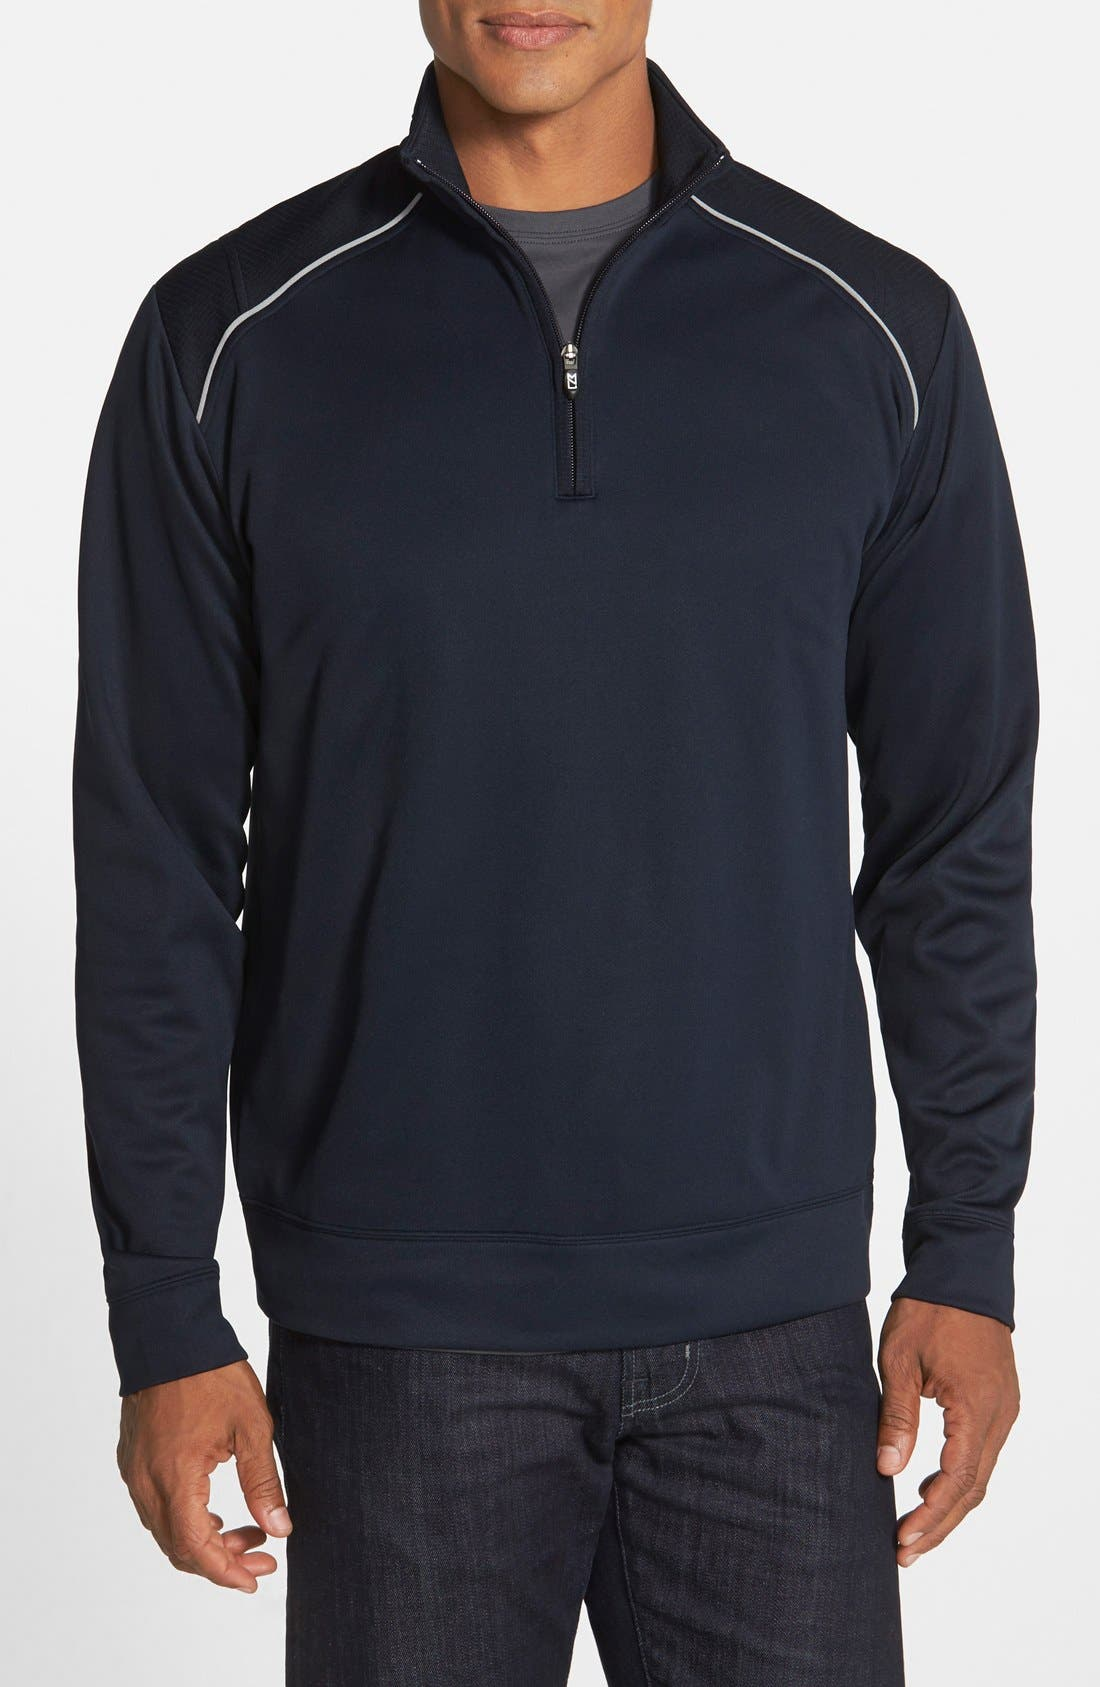 Alternate Image 1 Selected - Cutter & Buck Ridge WeatherTec Wind & Water Resistant Pullover (Online Only)